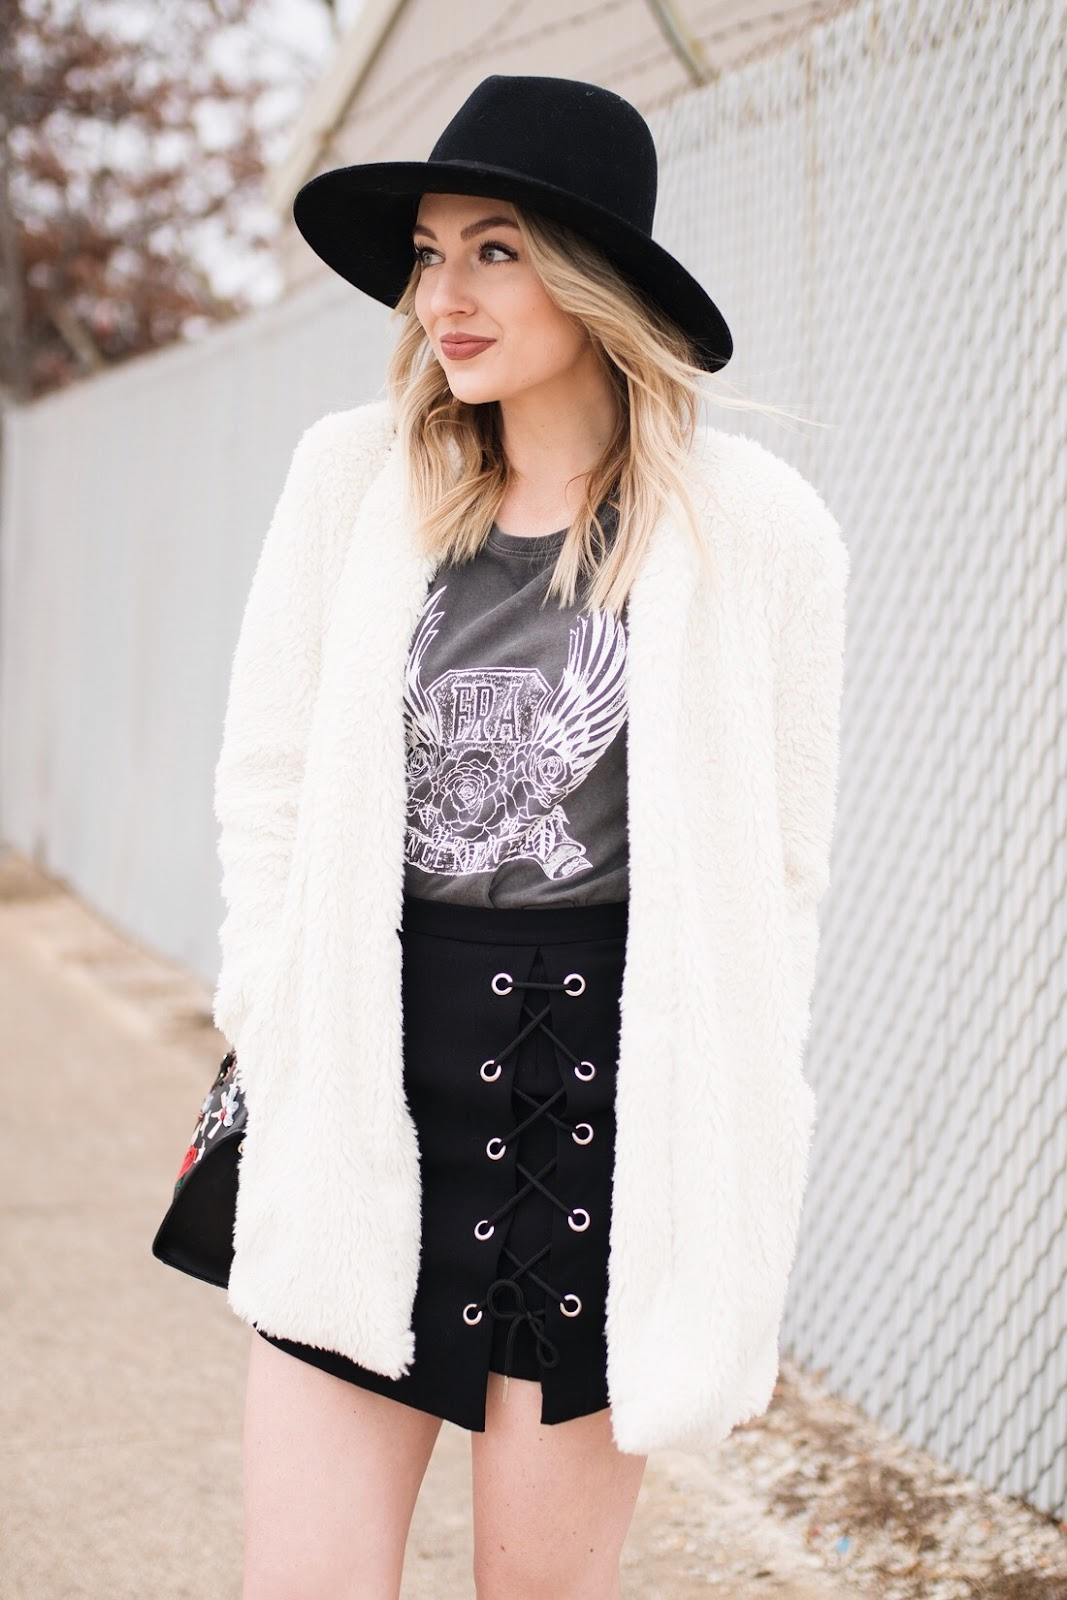 lace-up skirt